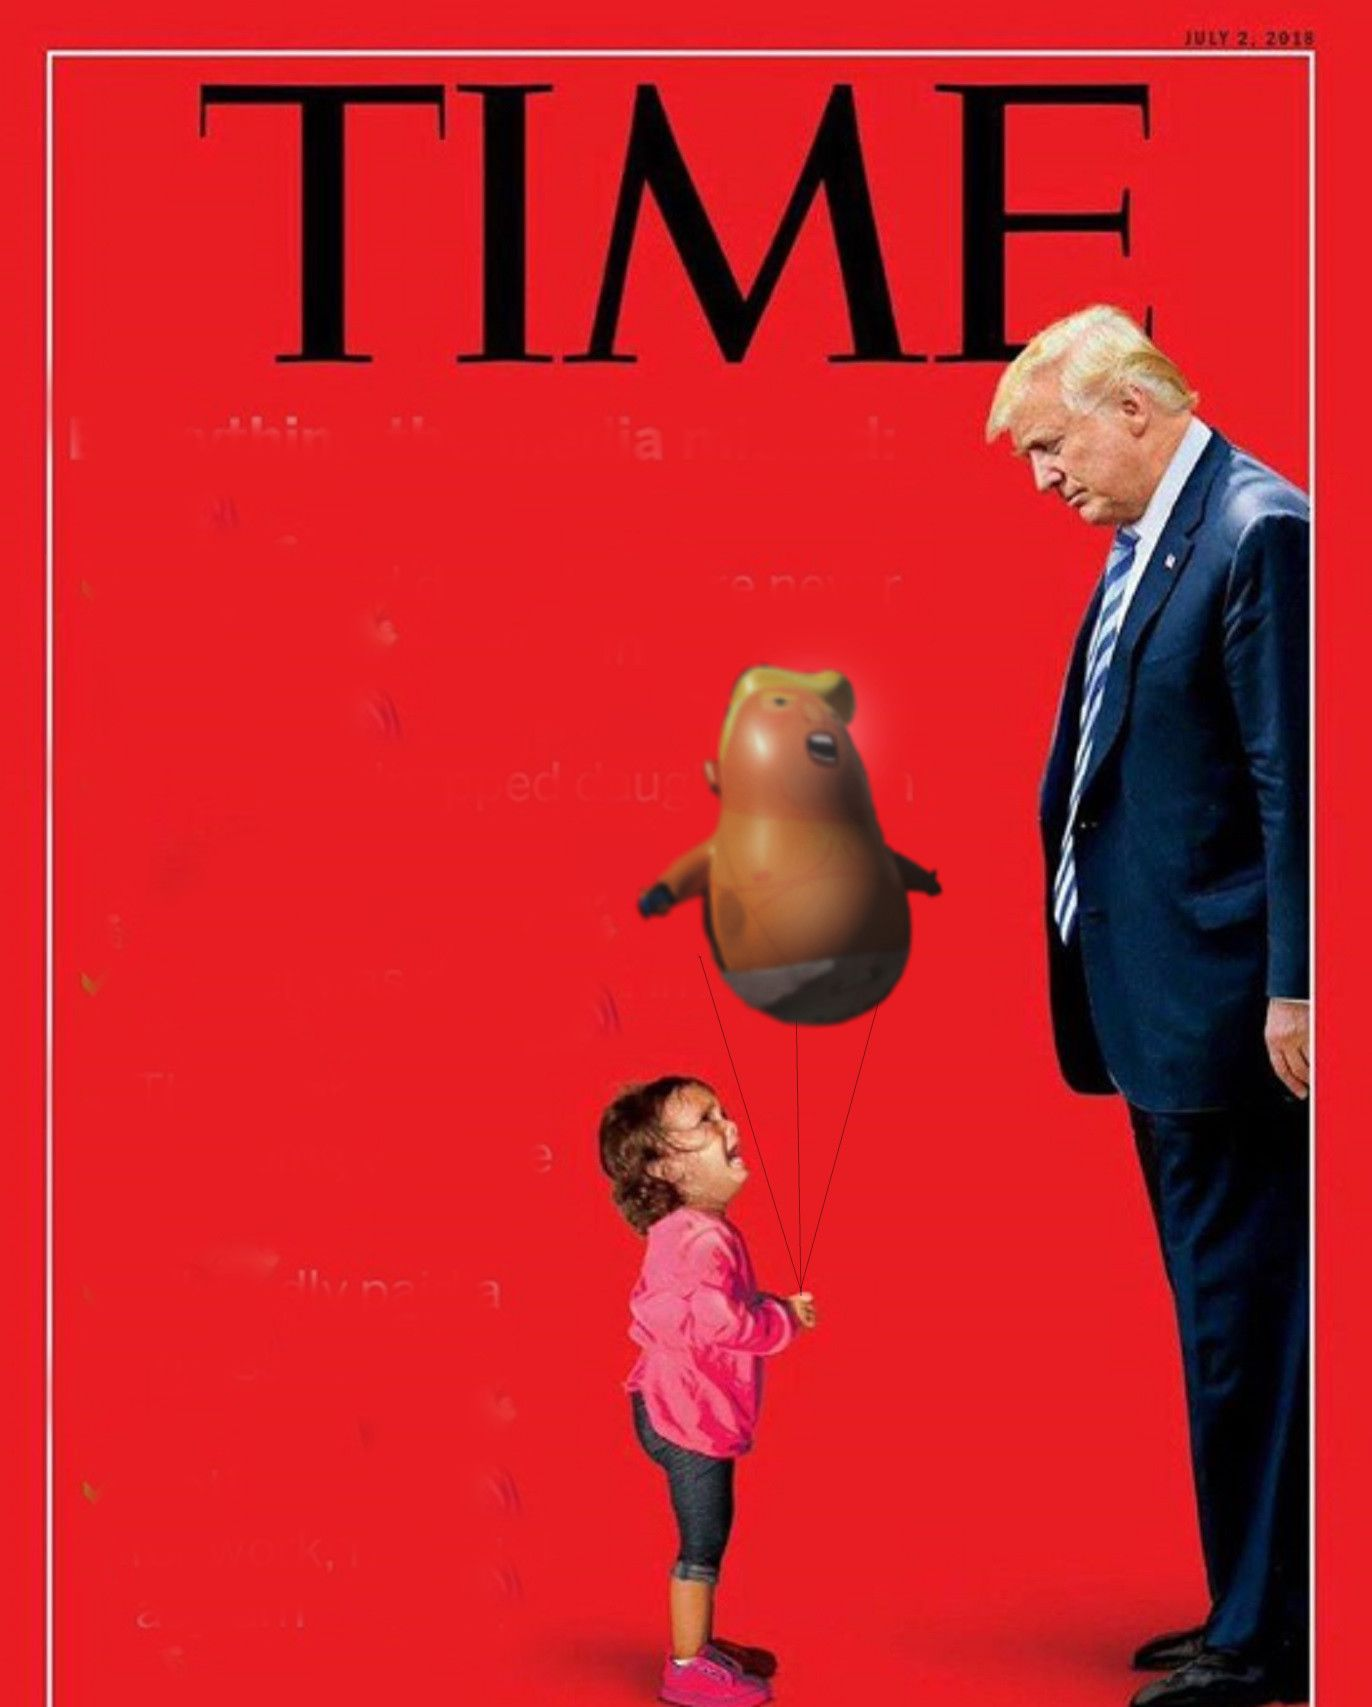 Time Mag Cover With Trump Baby Balloon Trump Baby Time Magazine Baby Balloon